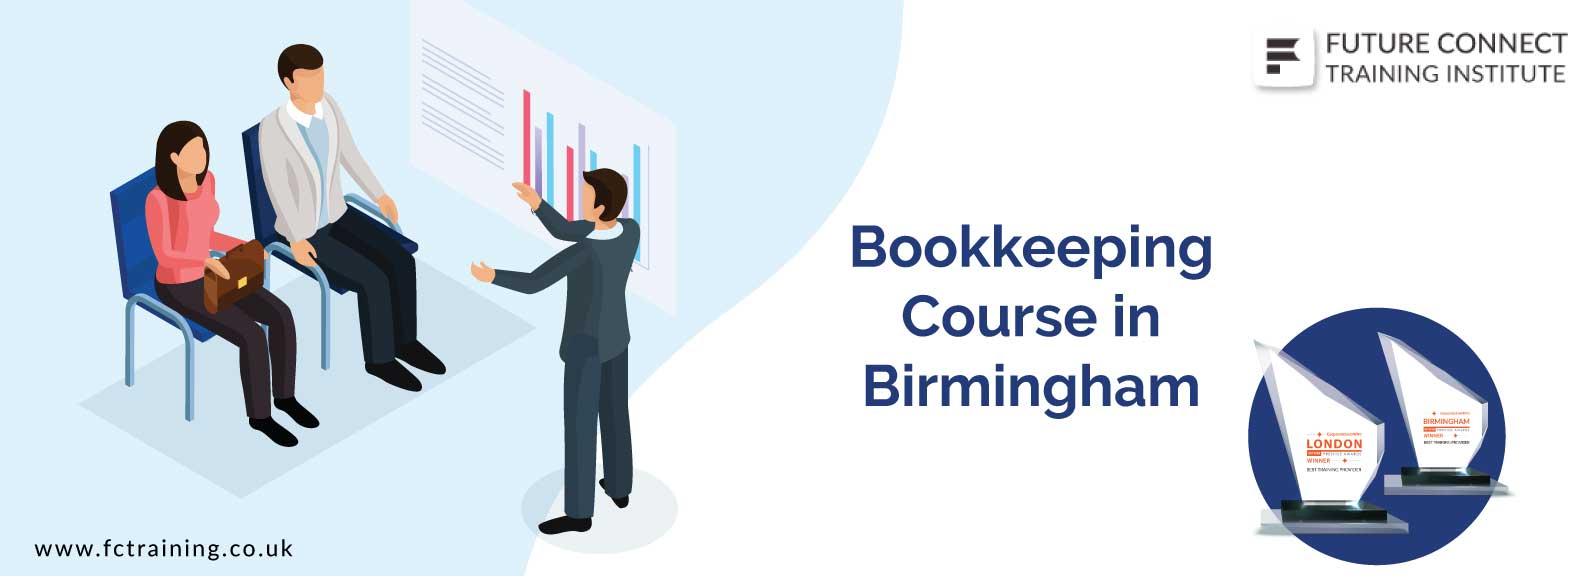 Bookkeeping Course in Birmingham